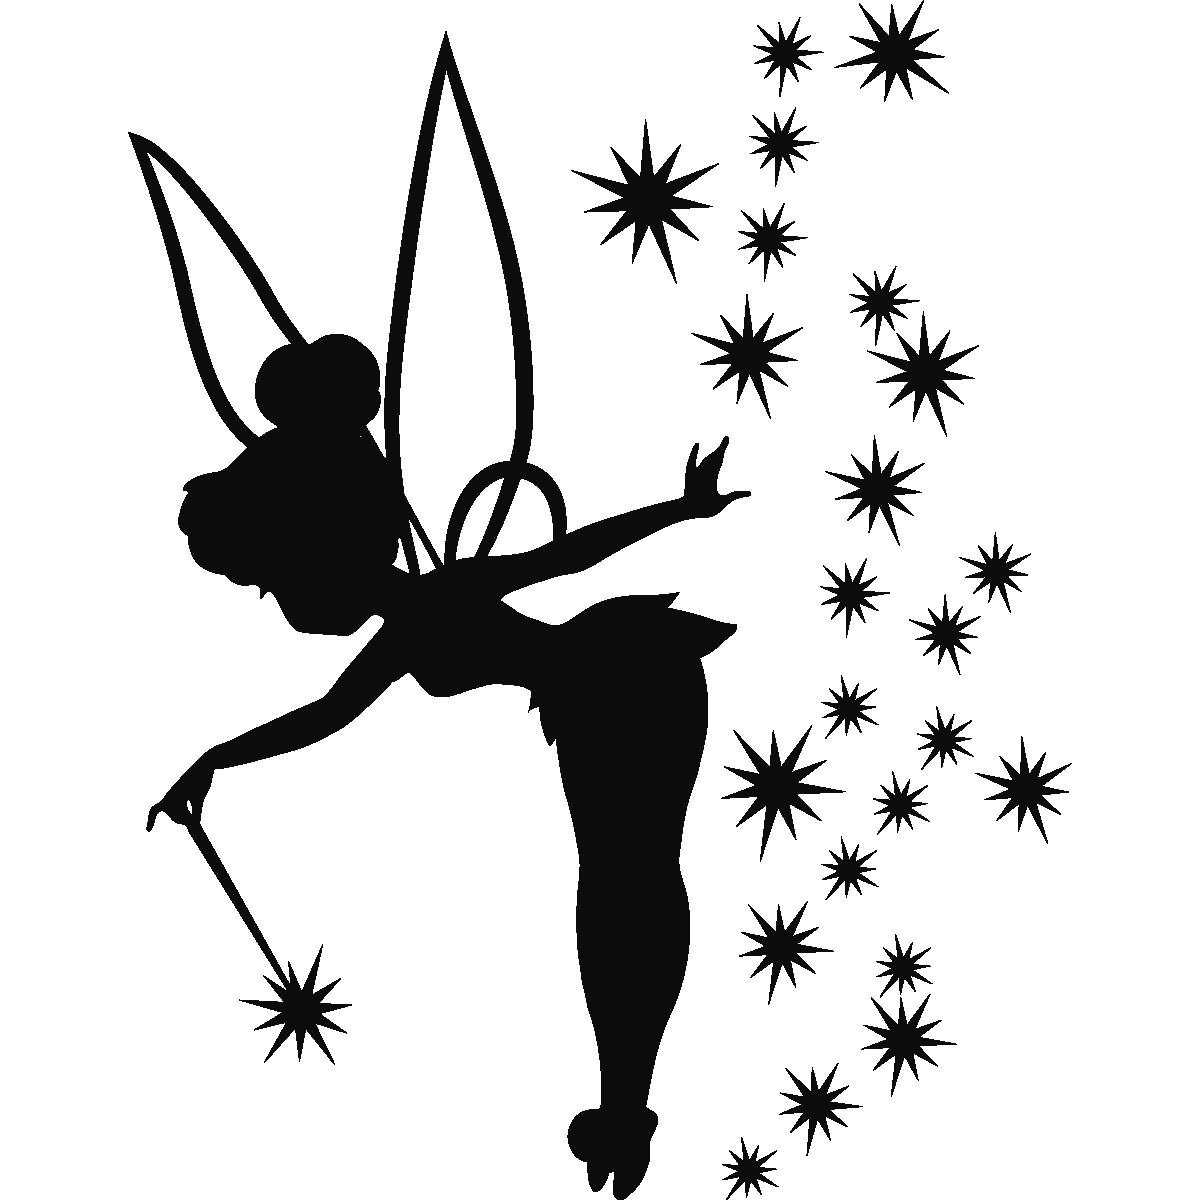 Fabuleux Sticker fée adorable | Tinkerbell, Silhouettes and Tattoo EA52